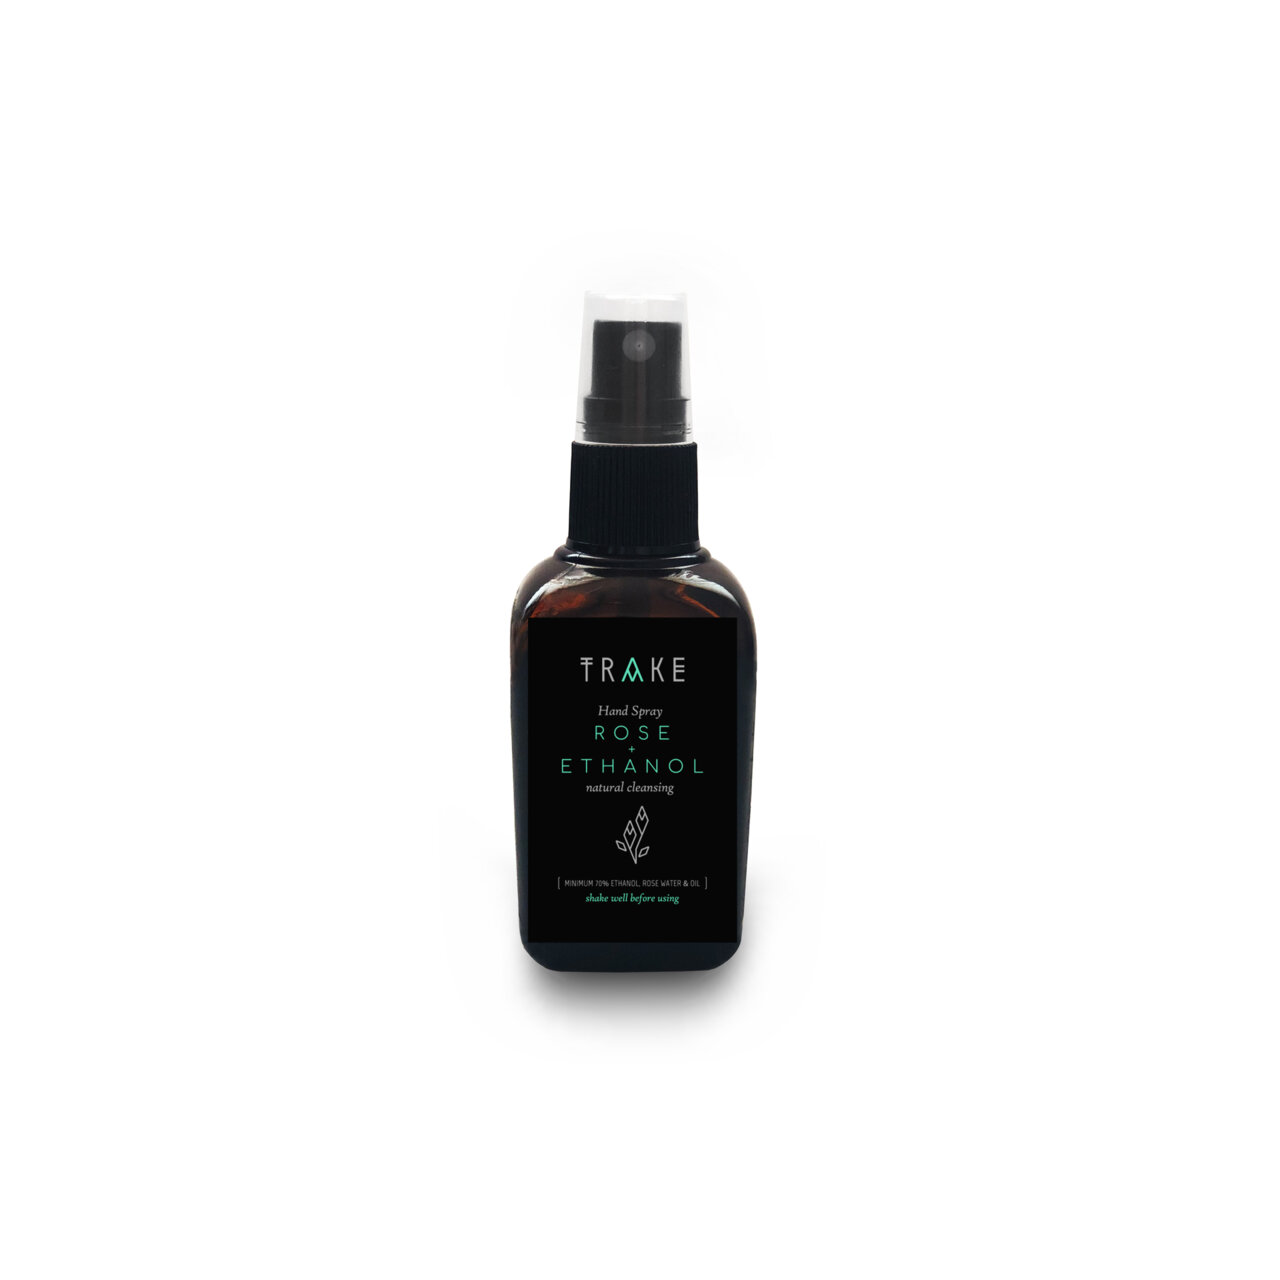 Natural hand cleansing spray for sale in a dark high-quality glass bottle